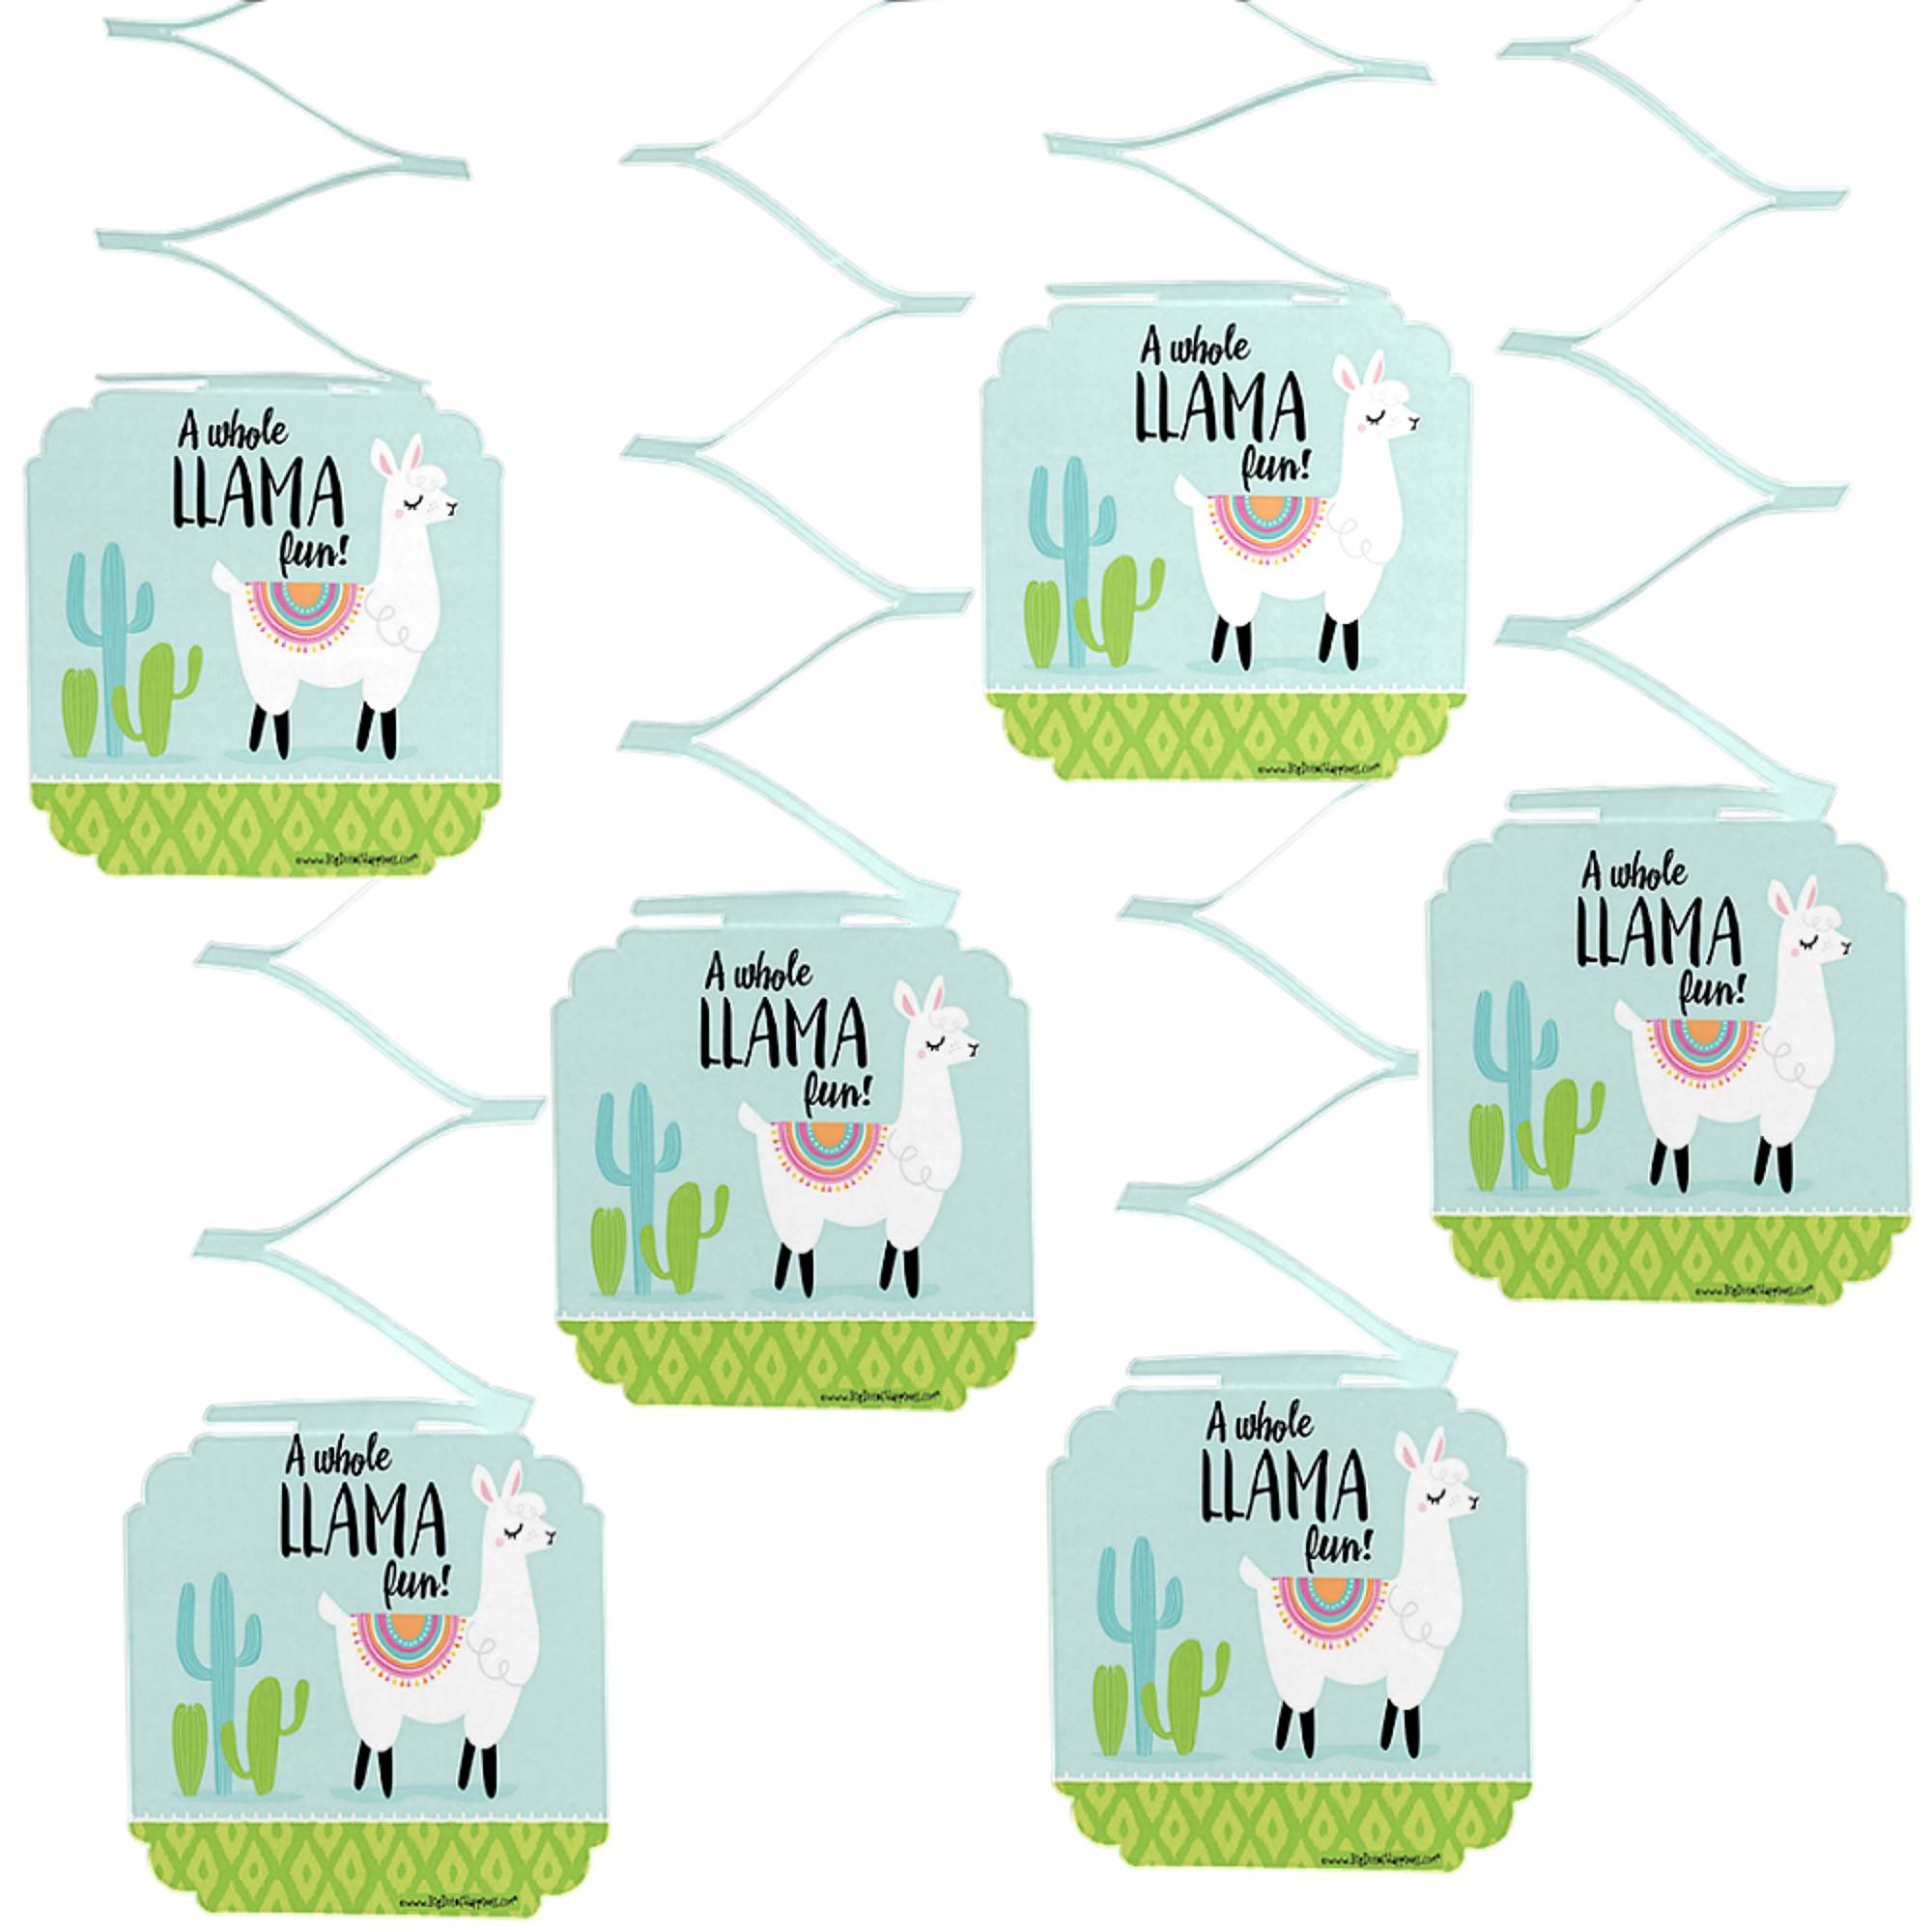 Whole Llama Fun - Llama Fiesta Baby Shower or Birthday Party Hanging Decorations - 6 Count